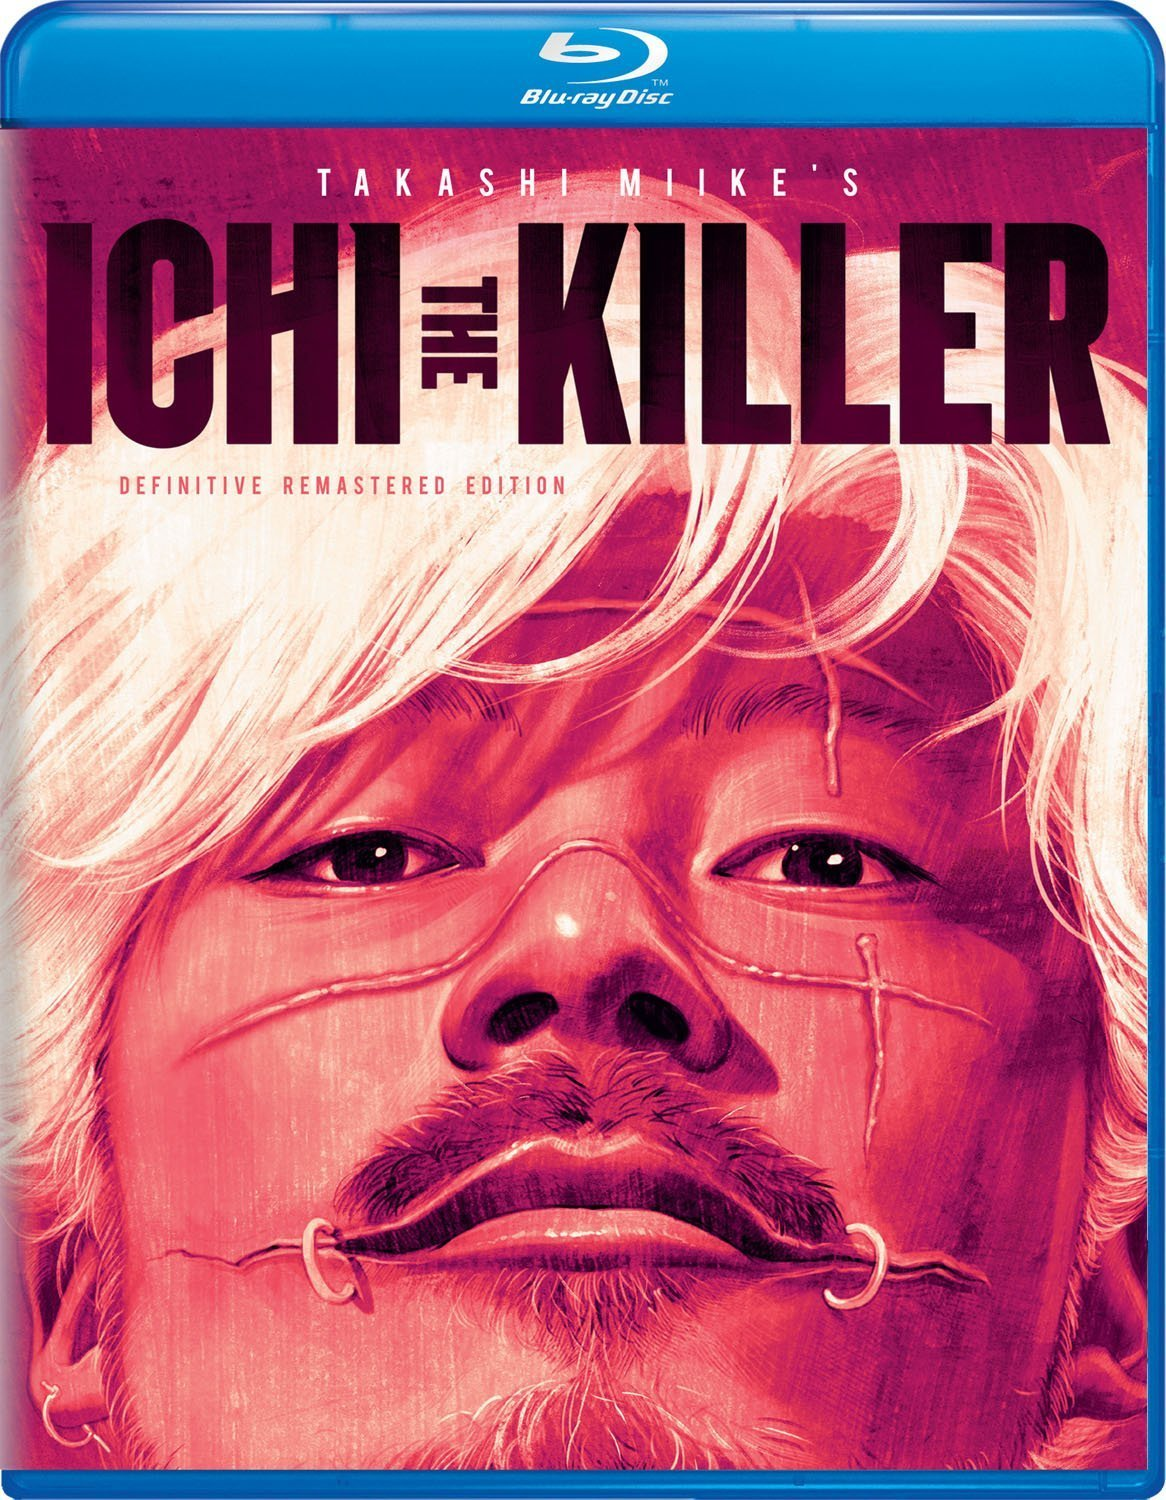 Ichi the Killer (2001) Blu-ray